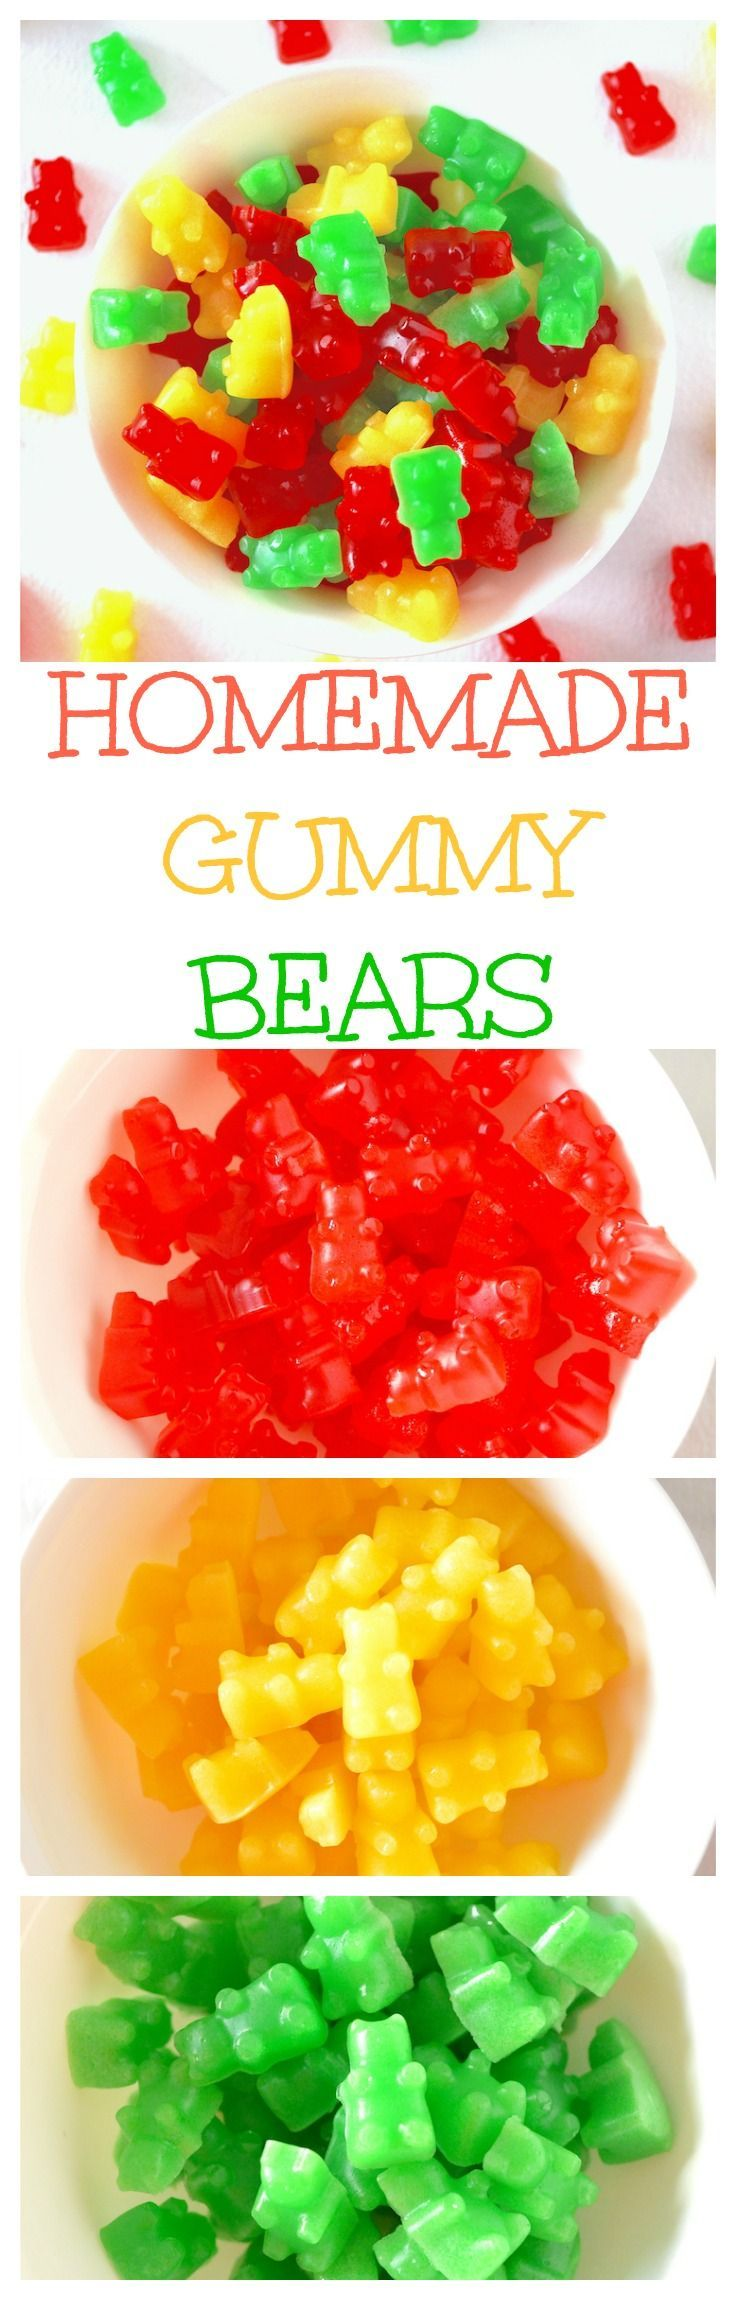 Homemade Gummy Bears - A simple recipe tips for chewy (not rubbery) regular and sour gummy bears with TONS of flavor, made with only 4 or 5 ingredients!